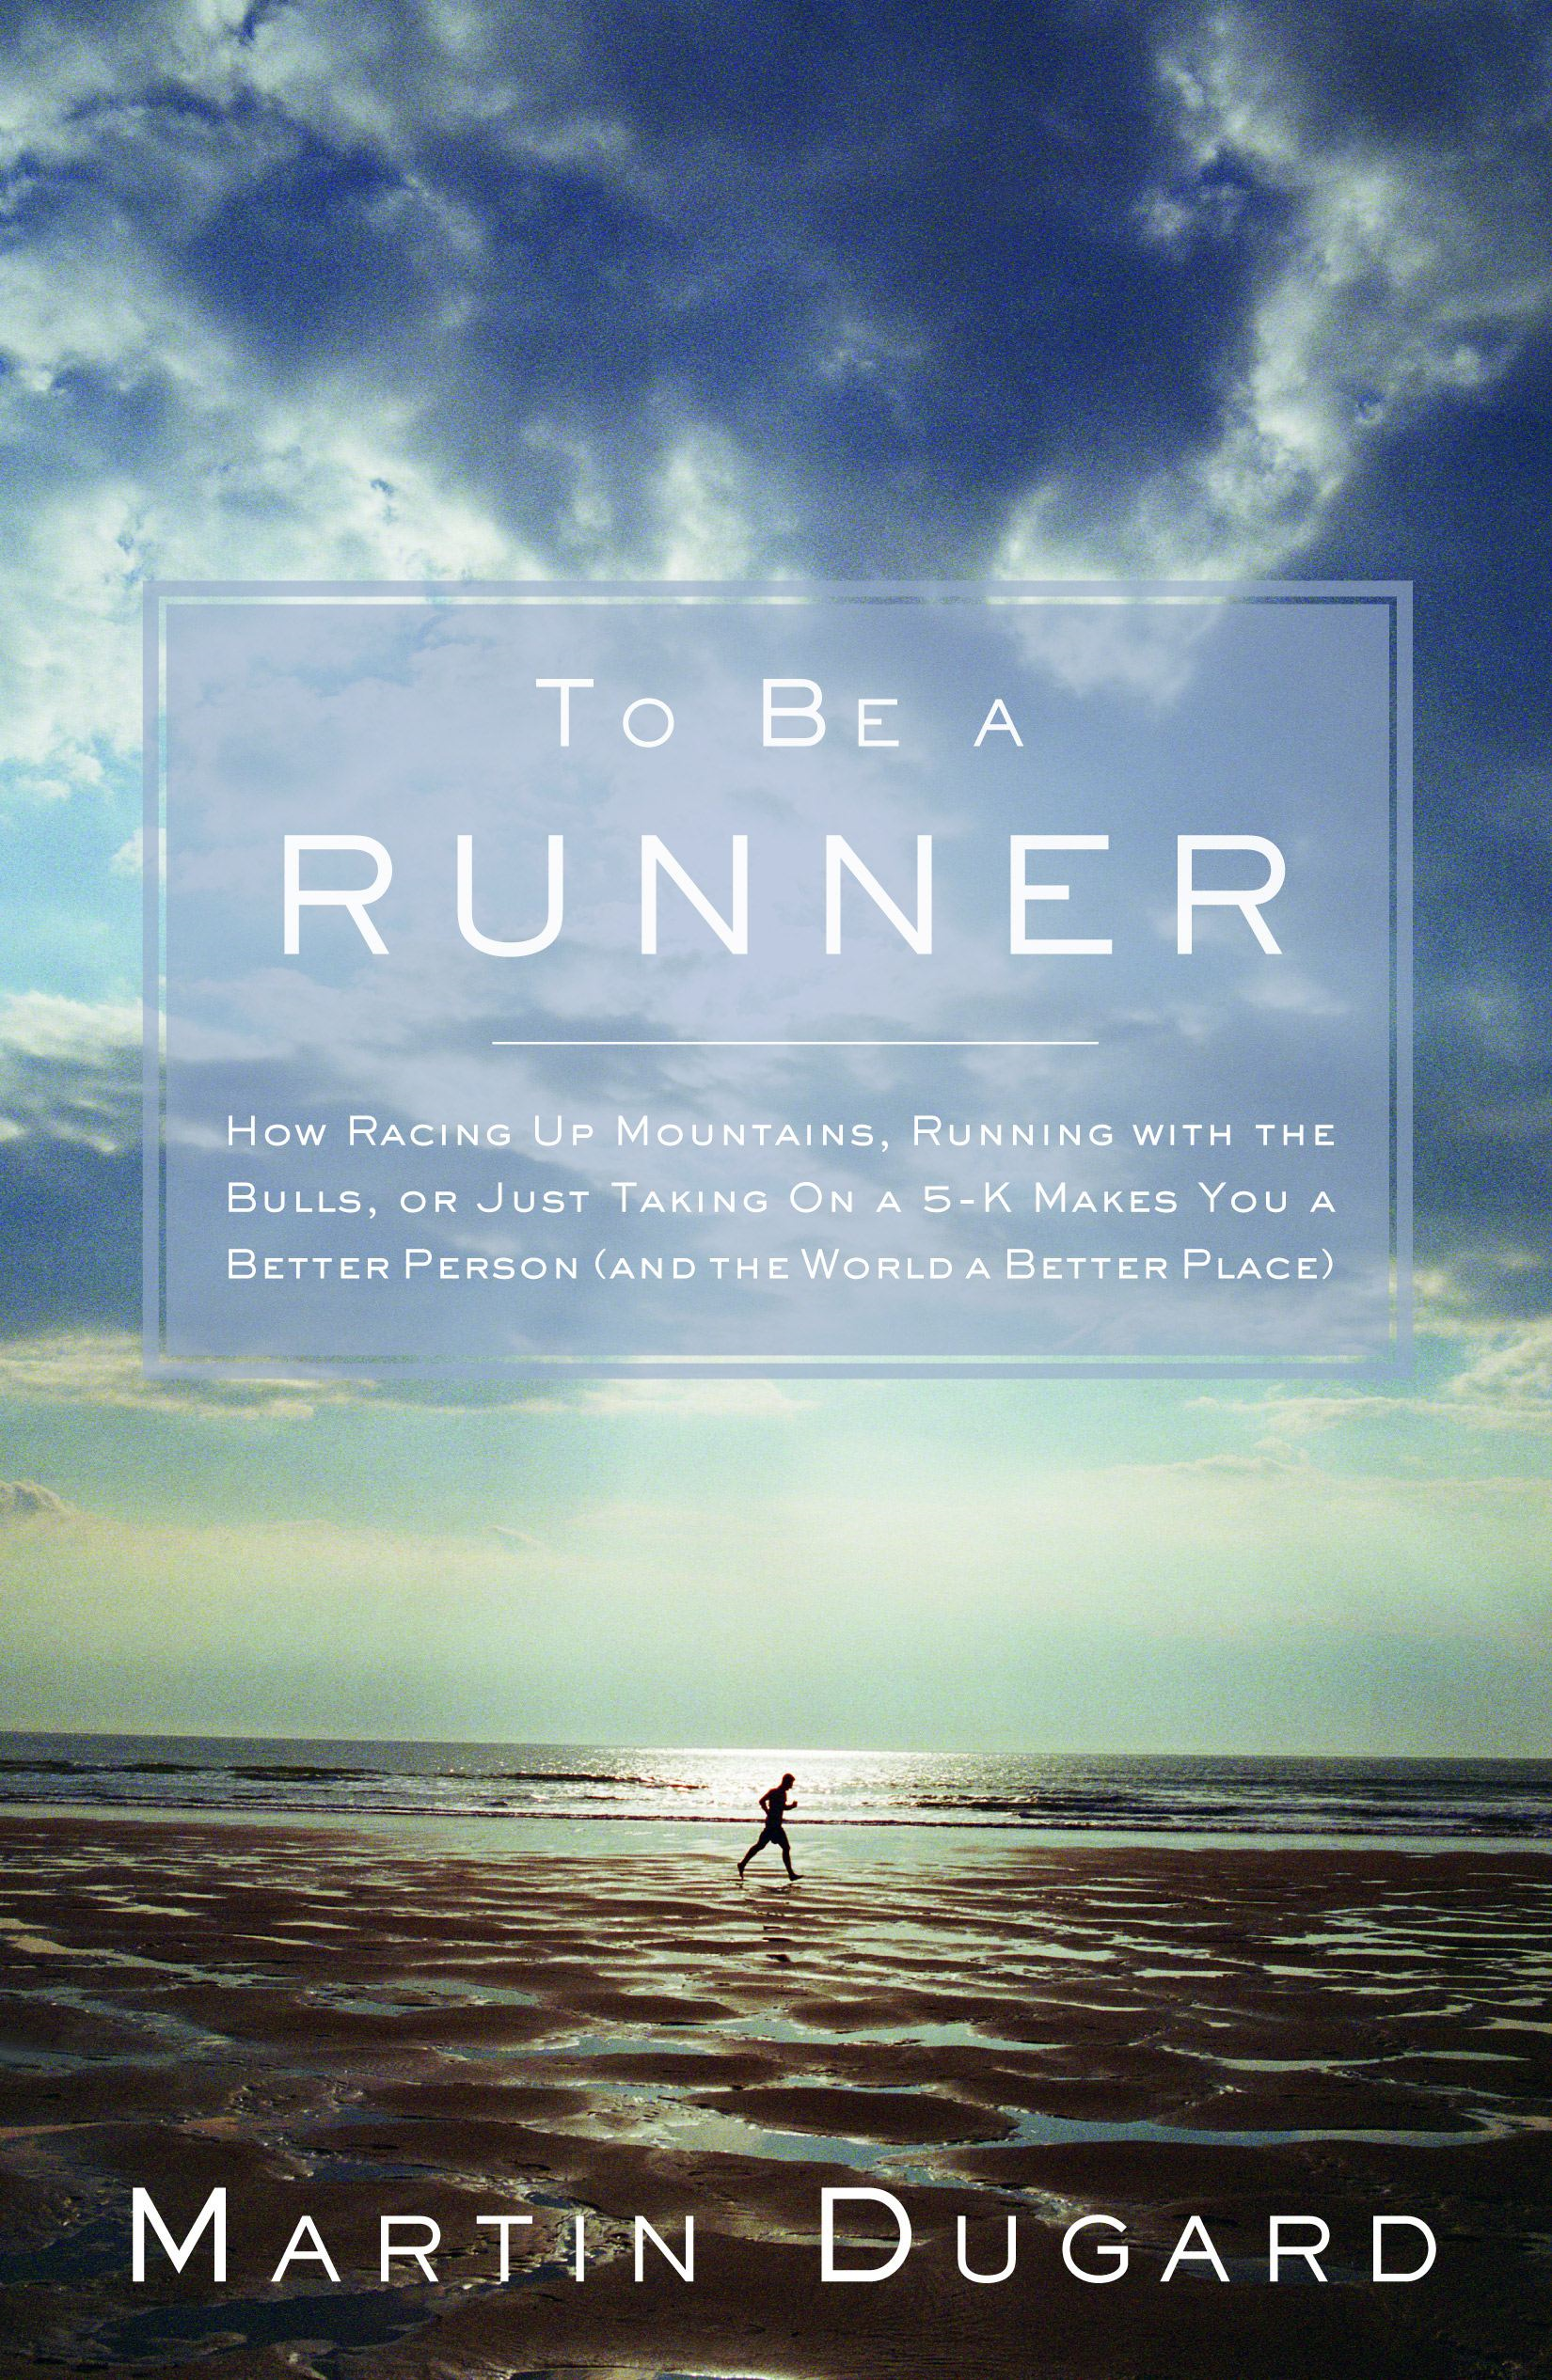 To Be A Runner: How Racing Up Mountains Running with the Bulls or Just Taking On a 5-K Makes You a Better Person (and the World a Better Place)